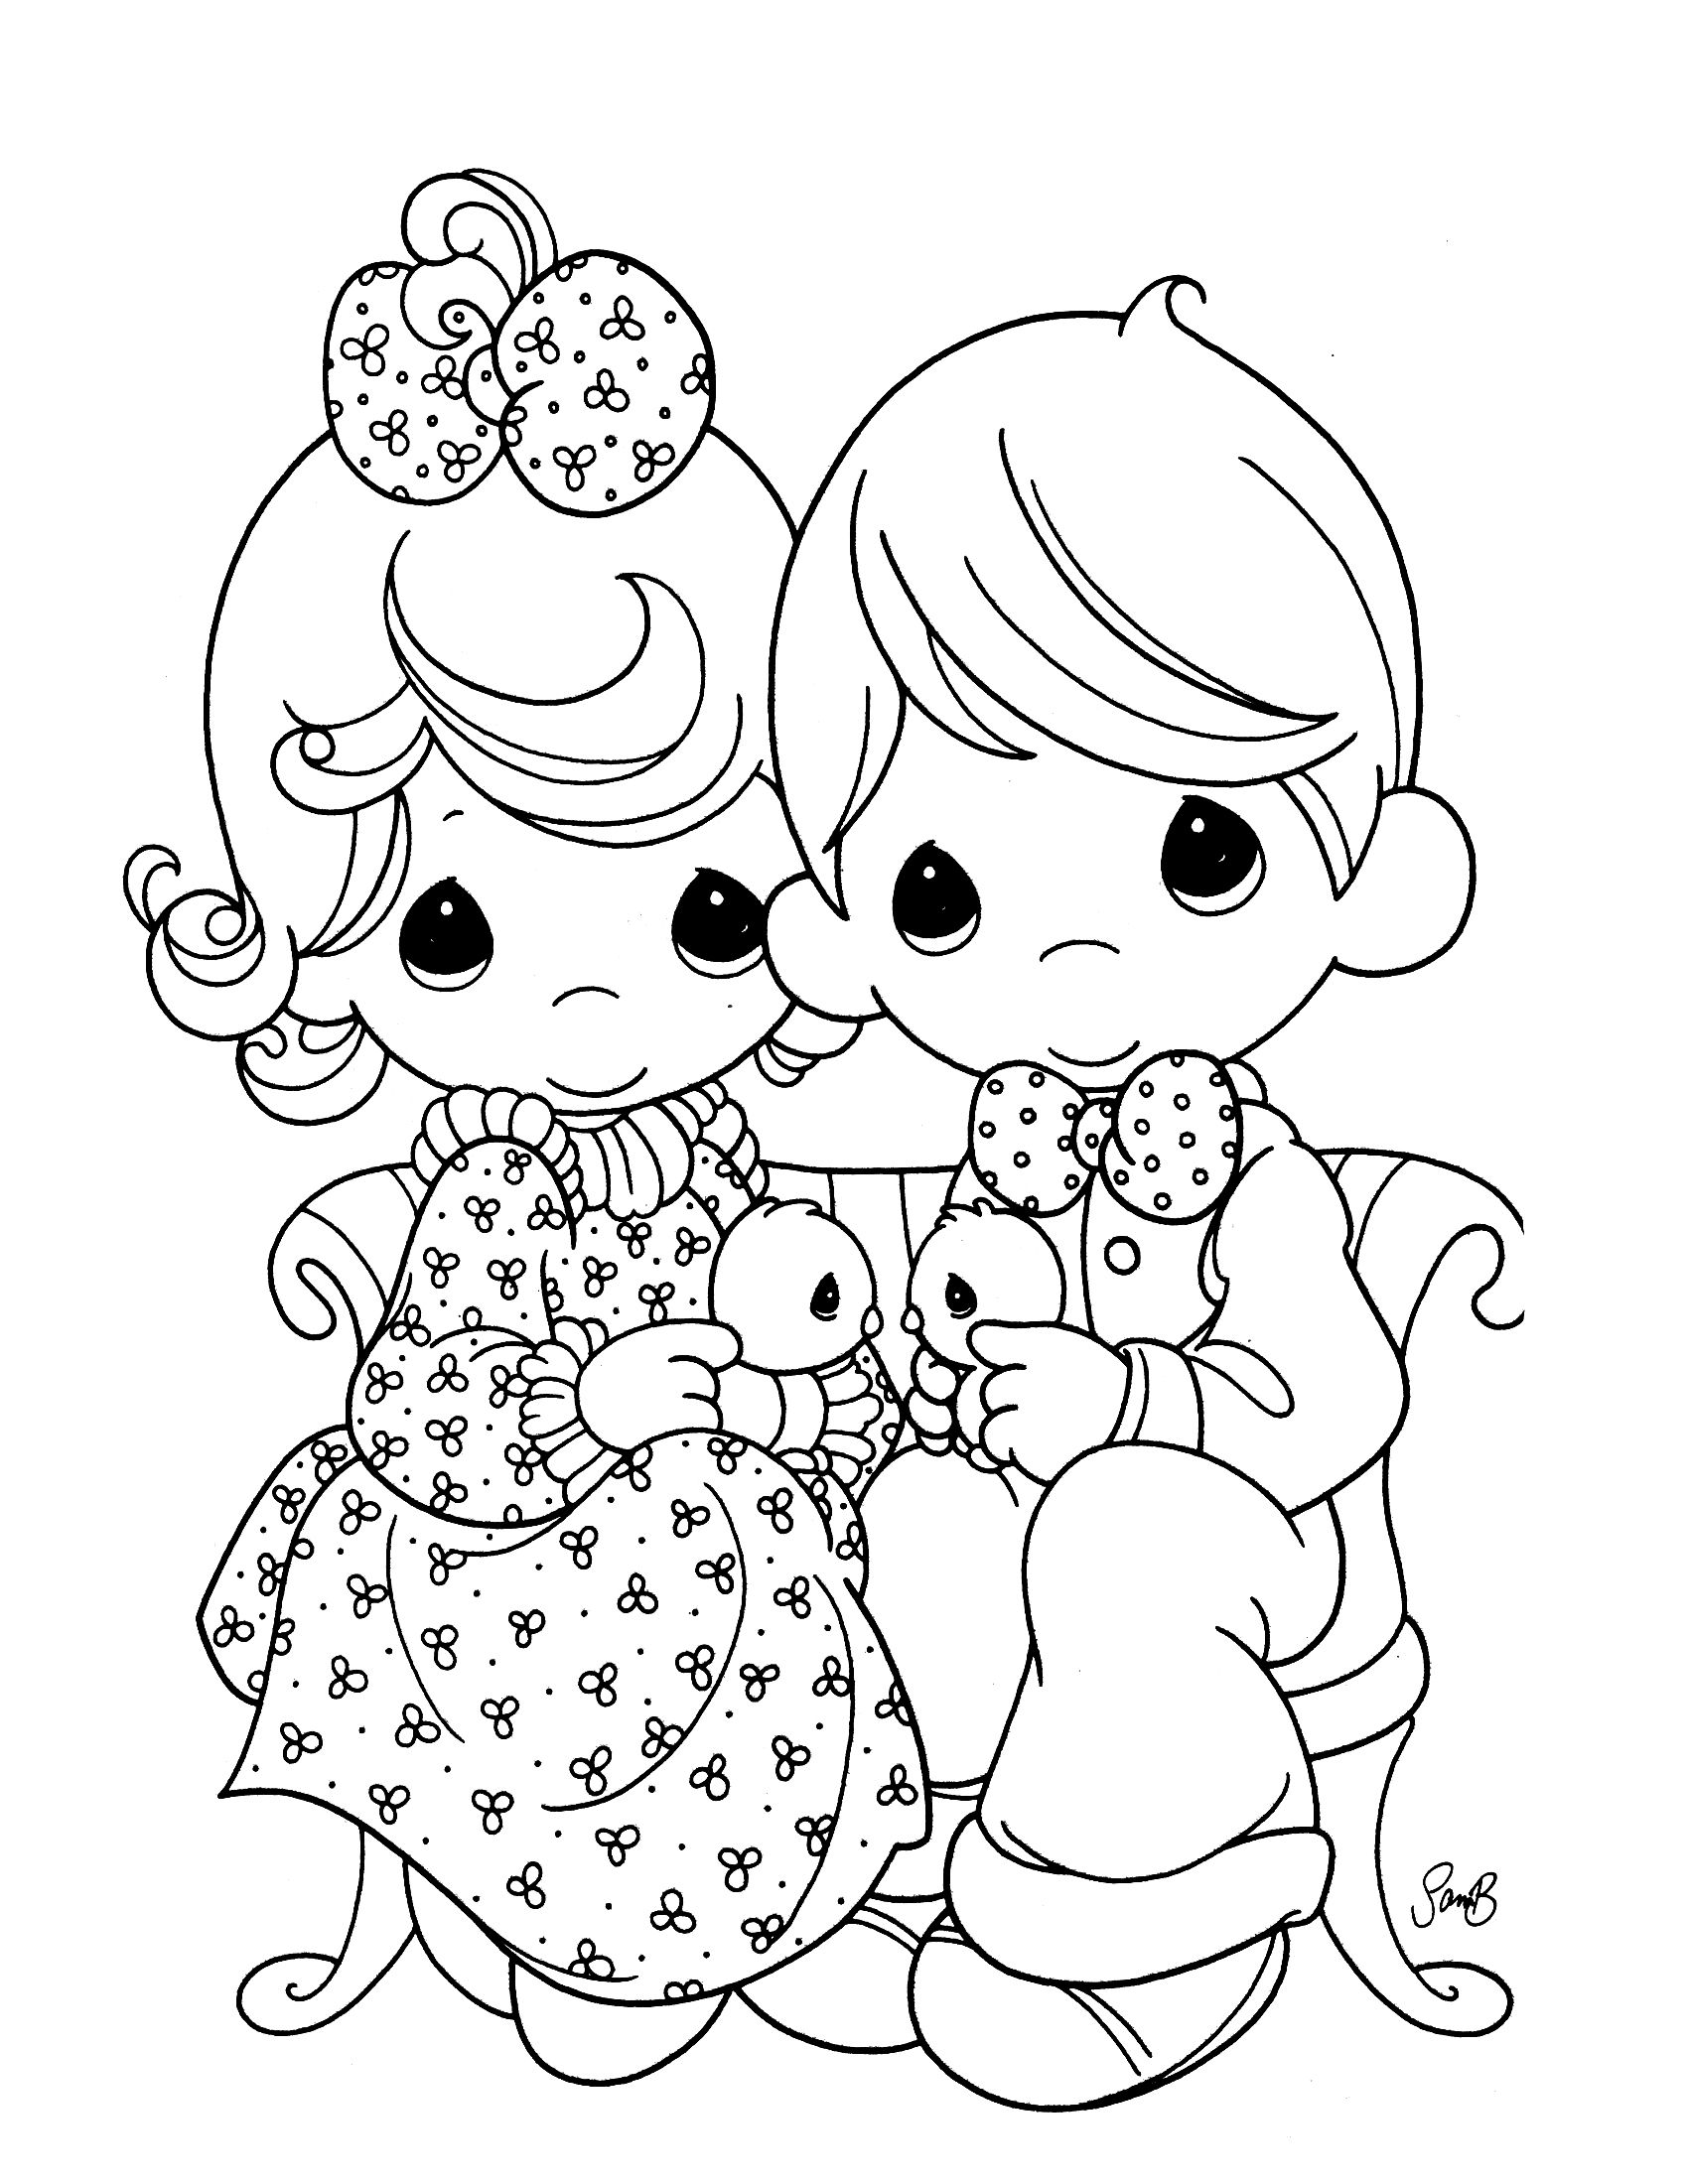 Precious Moments 21 - Coloringcolor.com | Precious moments coloring pages,  Baby coloring pages, Disney coloring pages